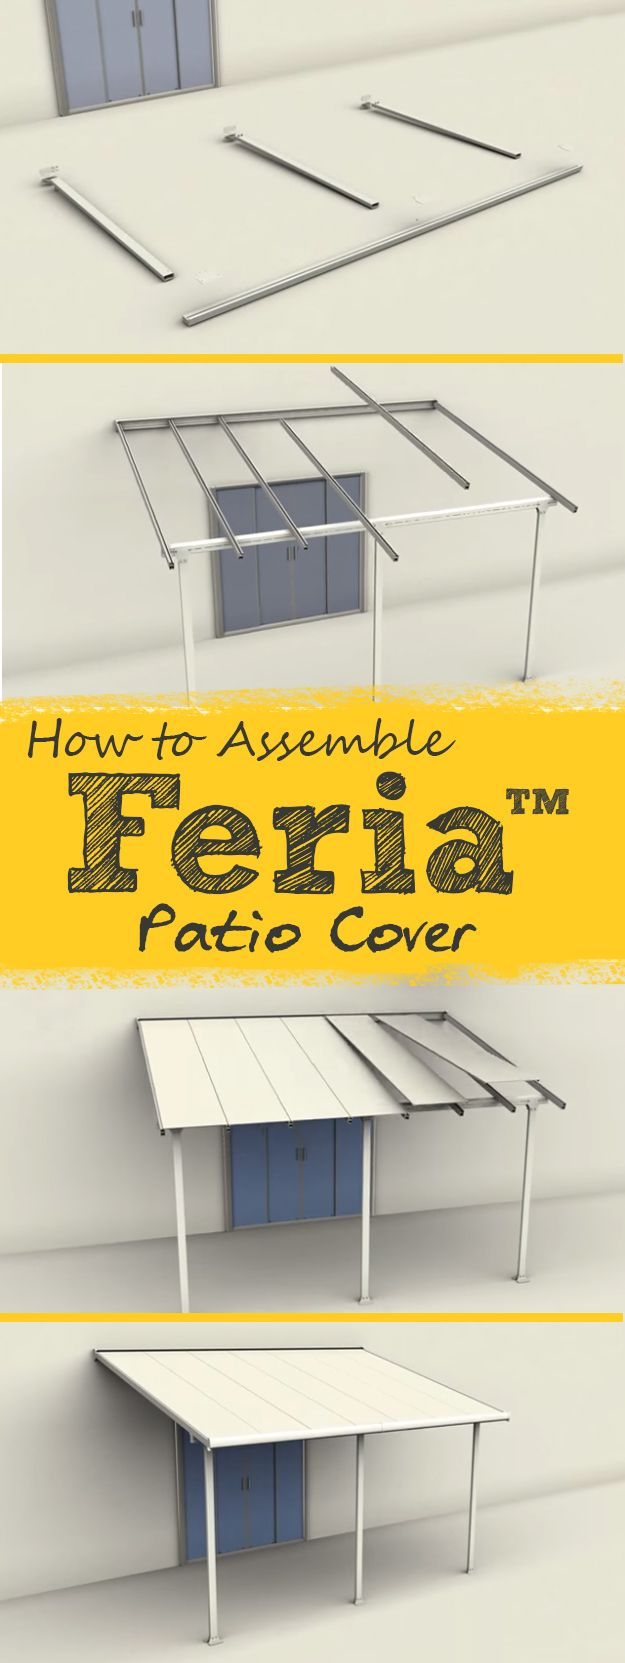 Palram Feria™ Patio Cover is a self-assembly kit that allows you to enjoy the outdoors year-round. Here is a video tutorial of the Feria™ assembly.